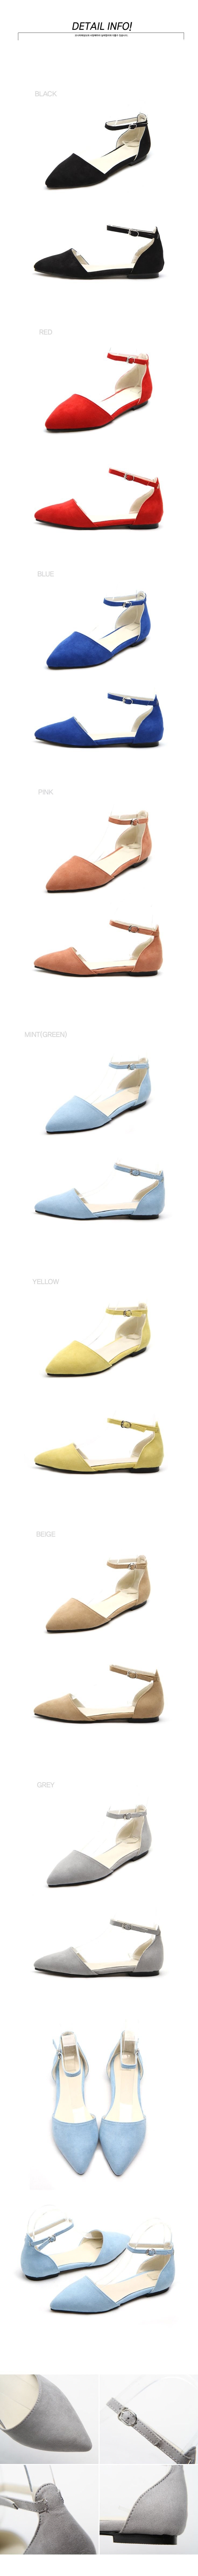 Ankle Strap D'Orsay Flats    Price$27.30